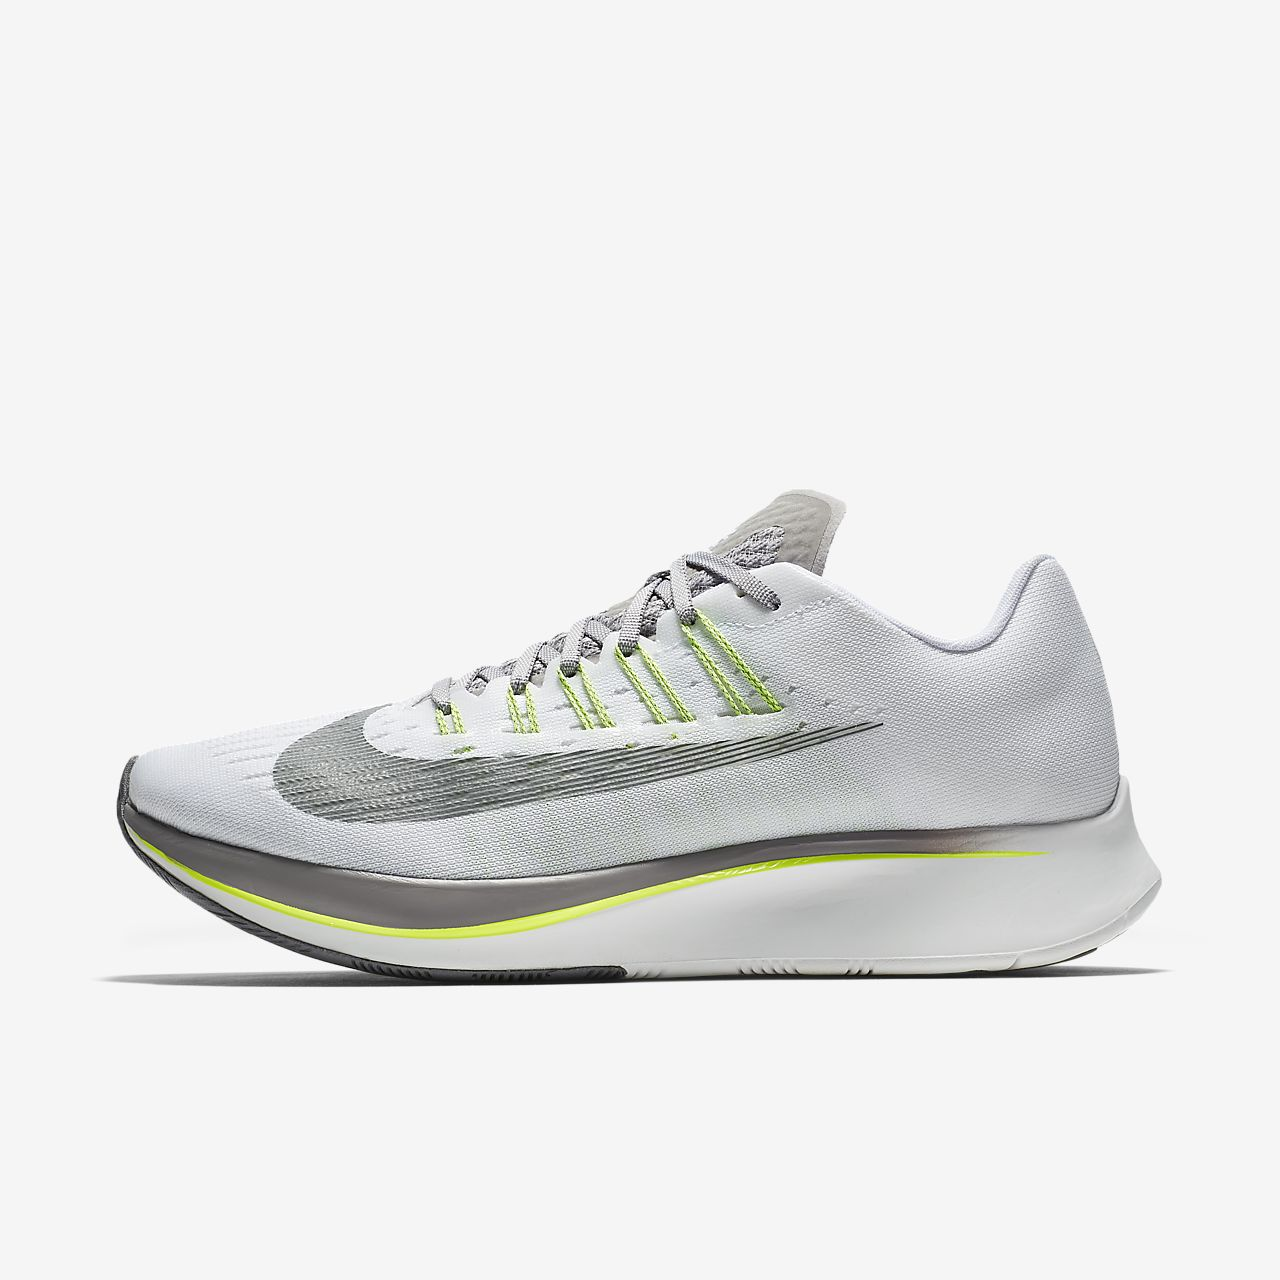 98487549dc6 Nike Zoom Fly Men s Running Shoe. Nike.com